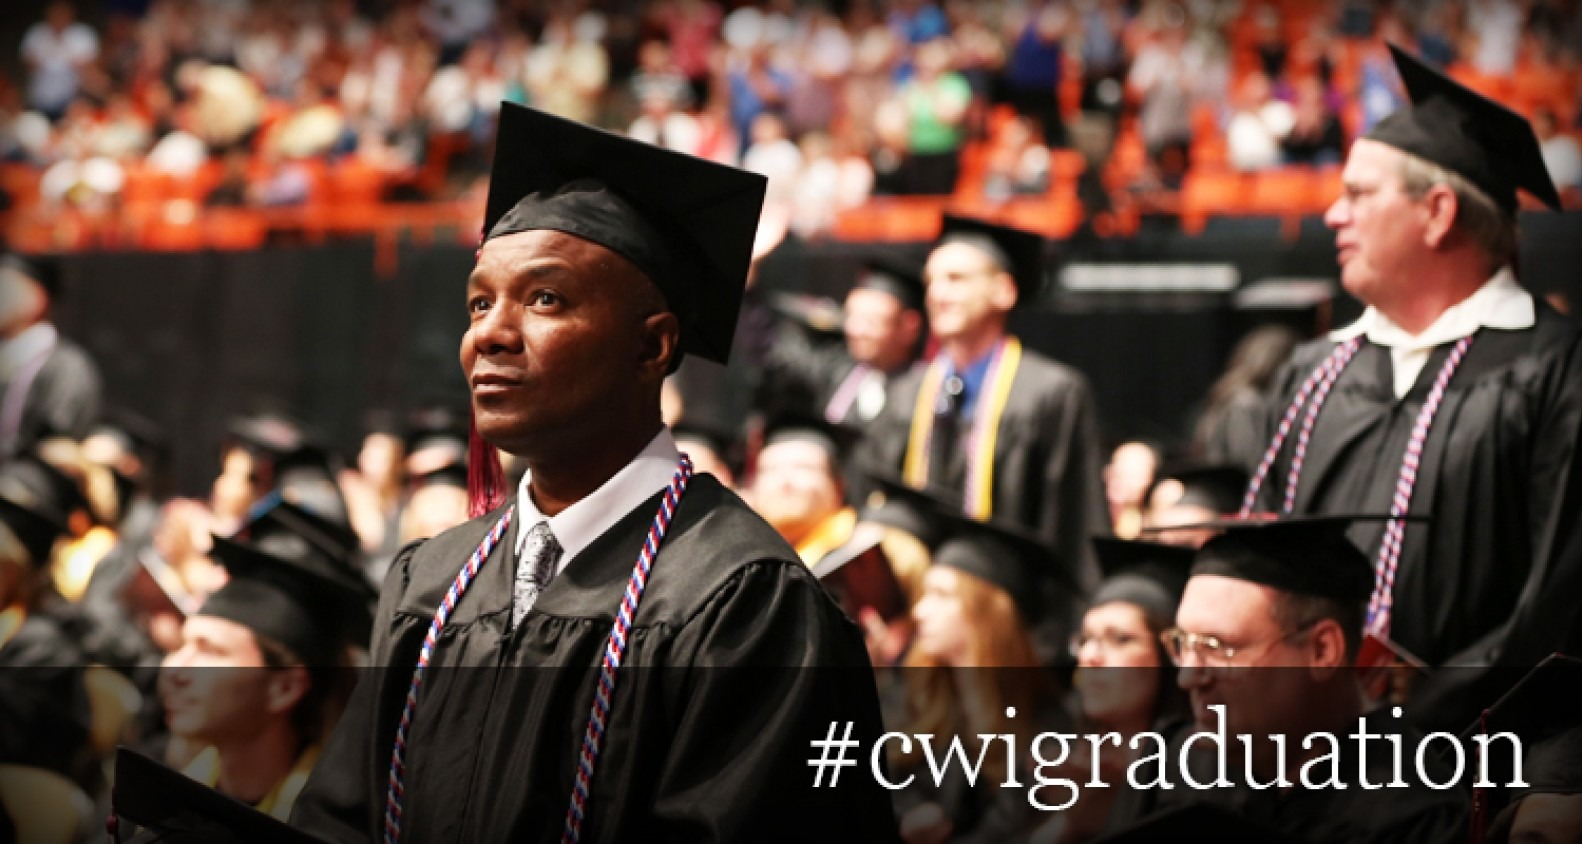 CWI Commencement Ceremony | May 13